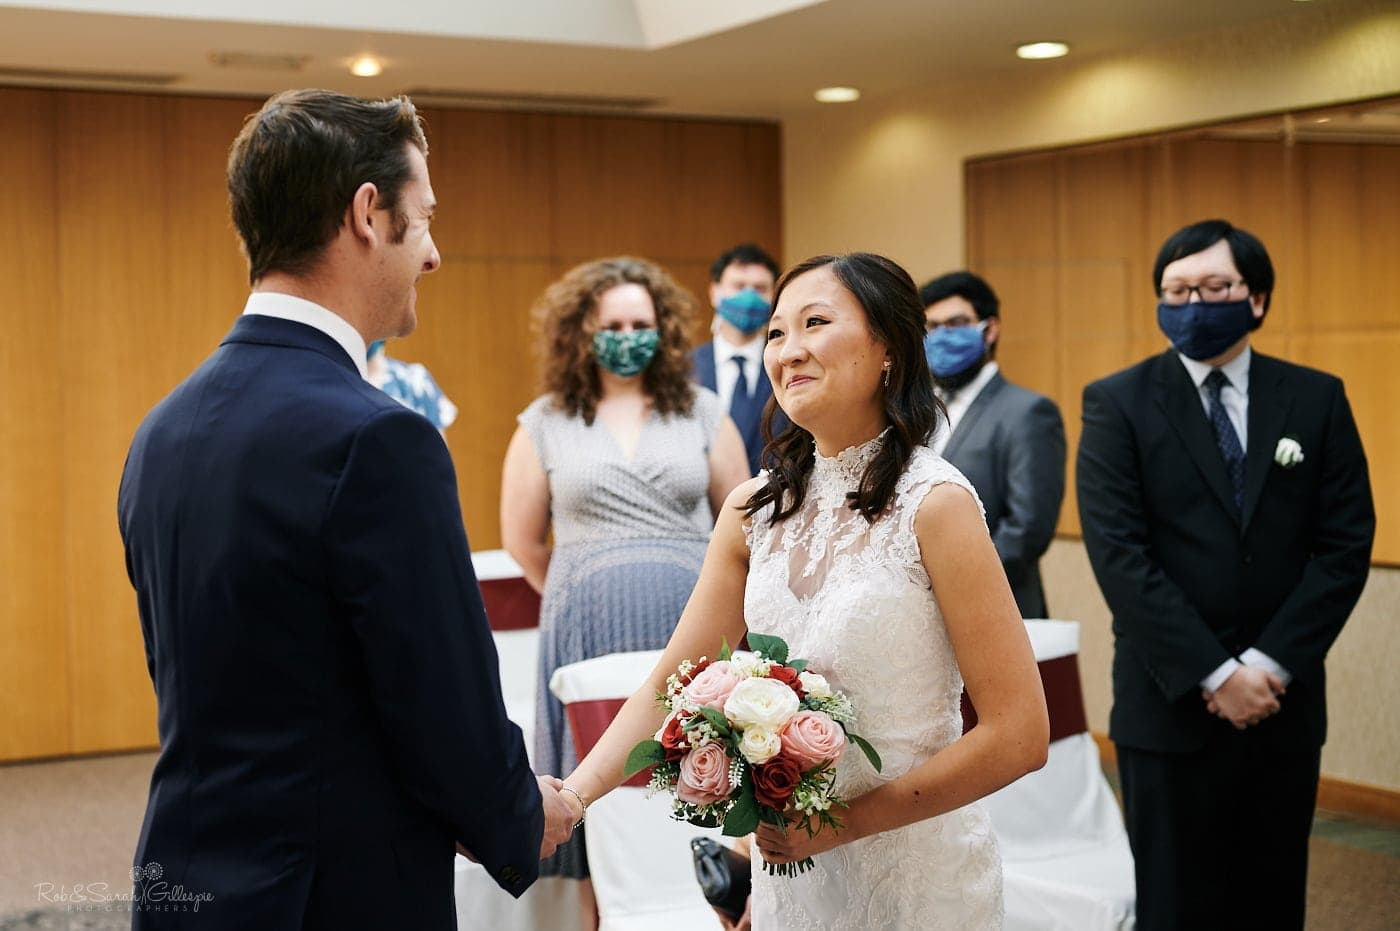 Bride emotional during small wedding ceremony